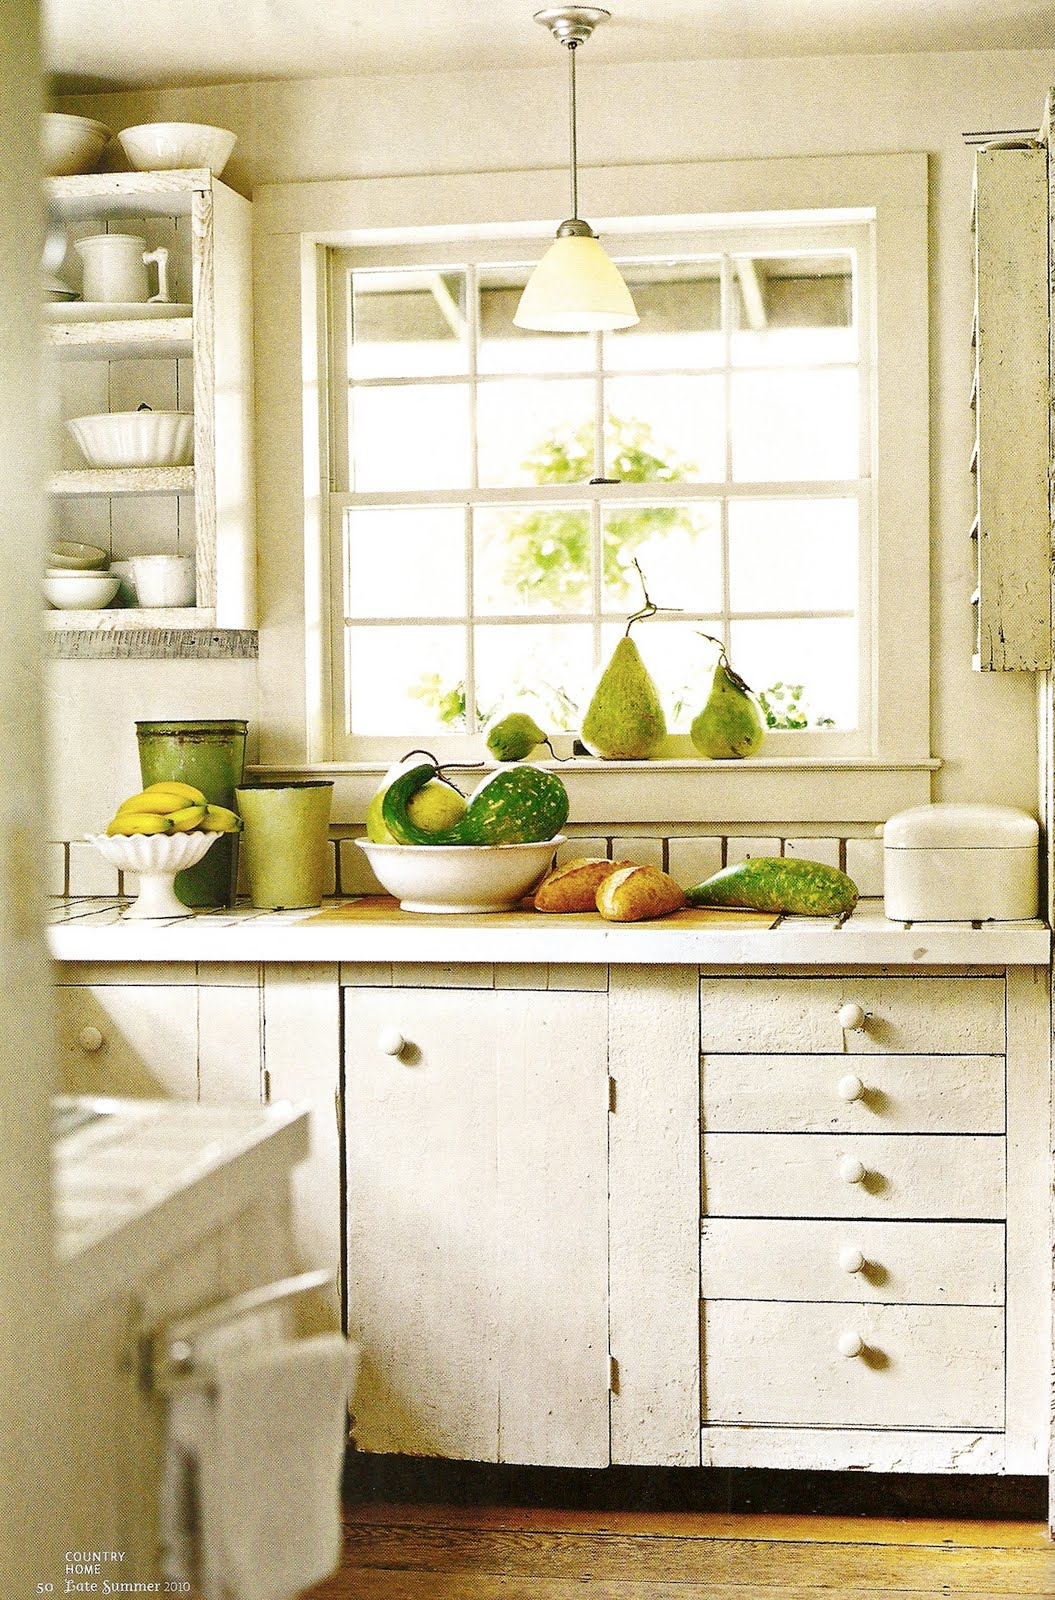 D cor de provence needing a little nantucket style for Nantucket style kitchen